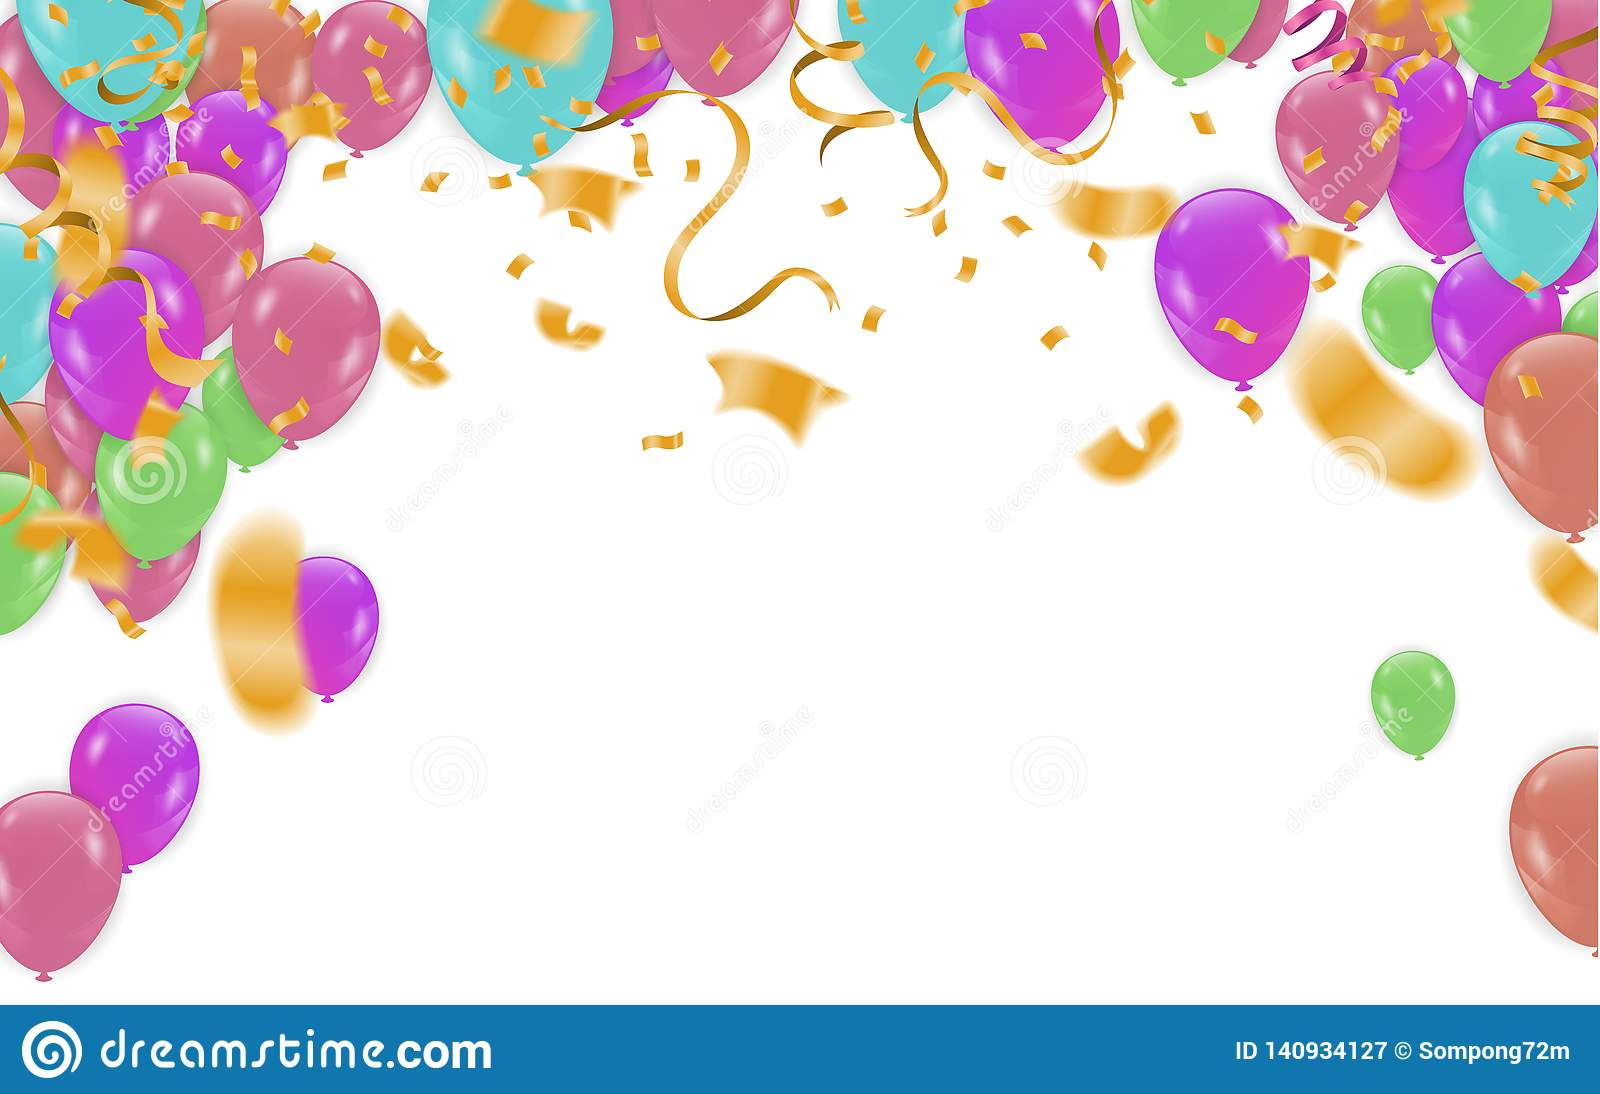 Happy Birthday Card Template With Foil Confetti And Balloons Party